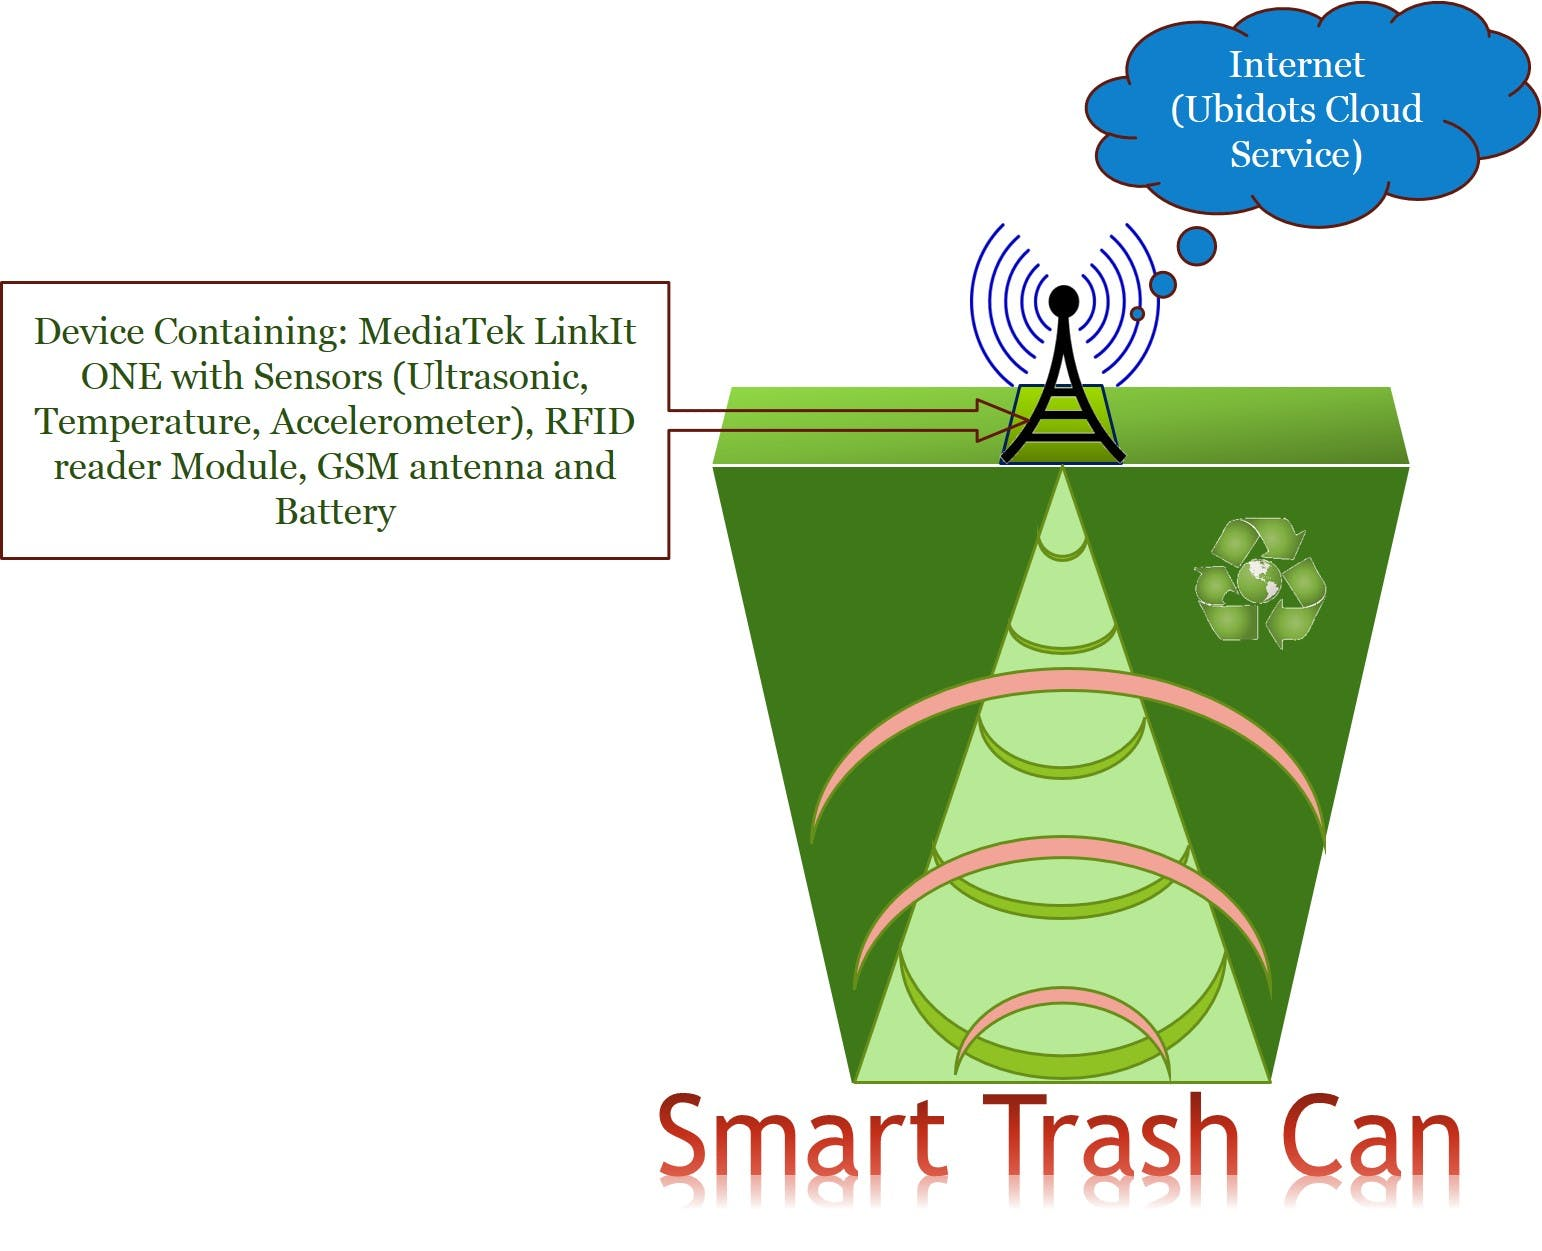 Smart Trash Can IoT System